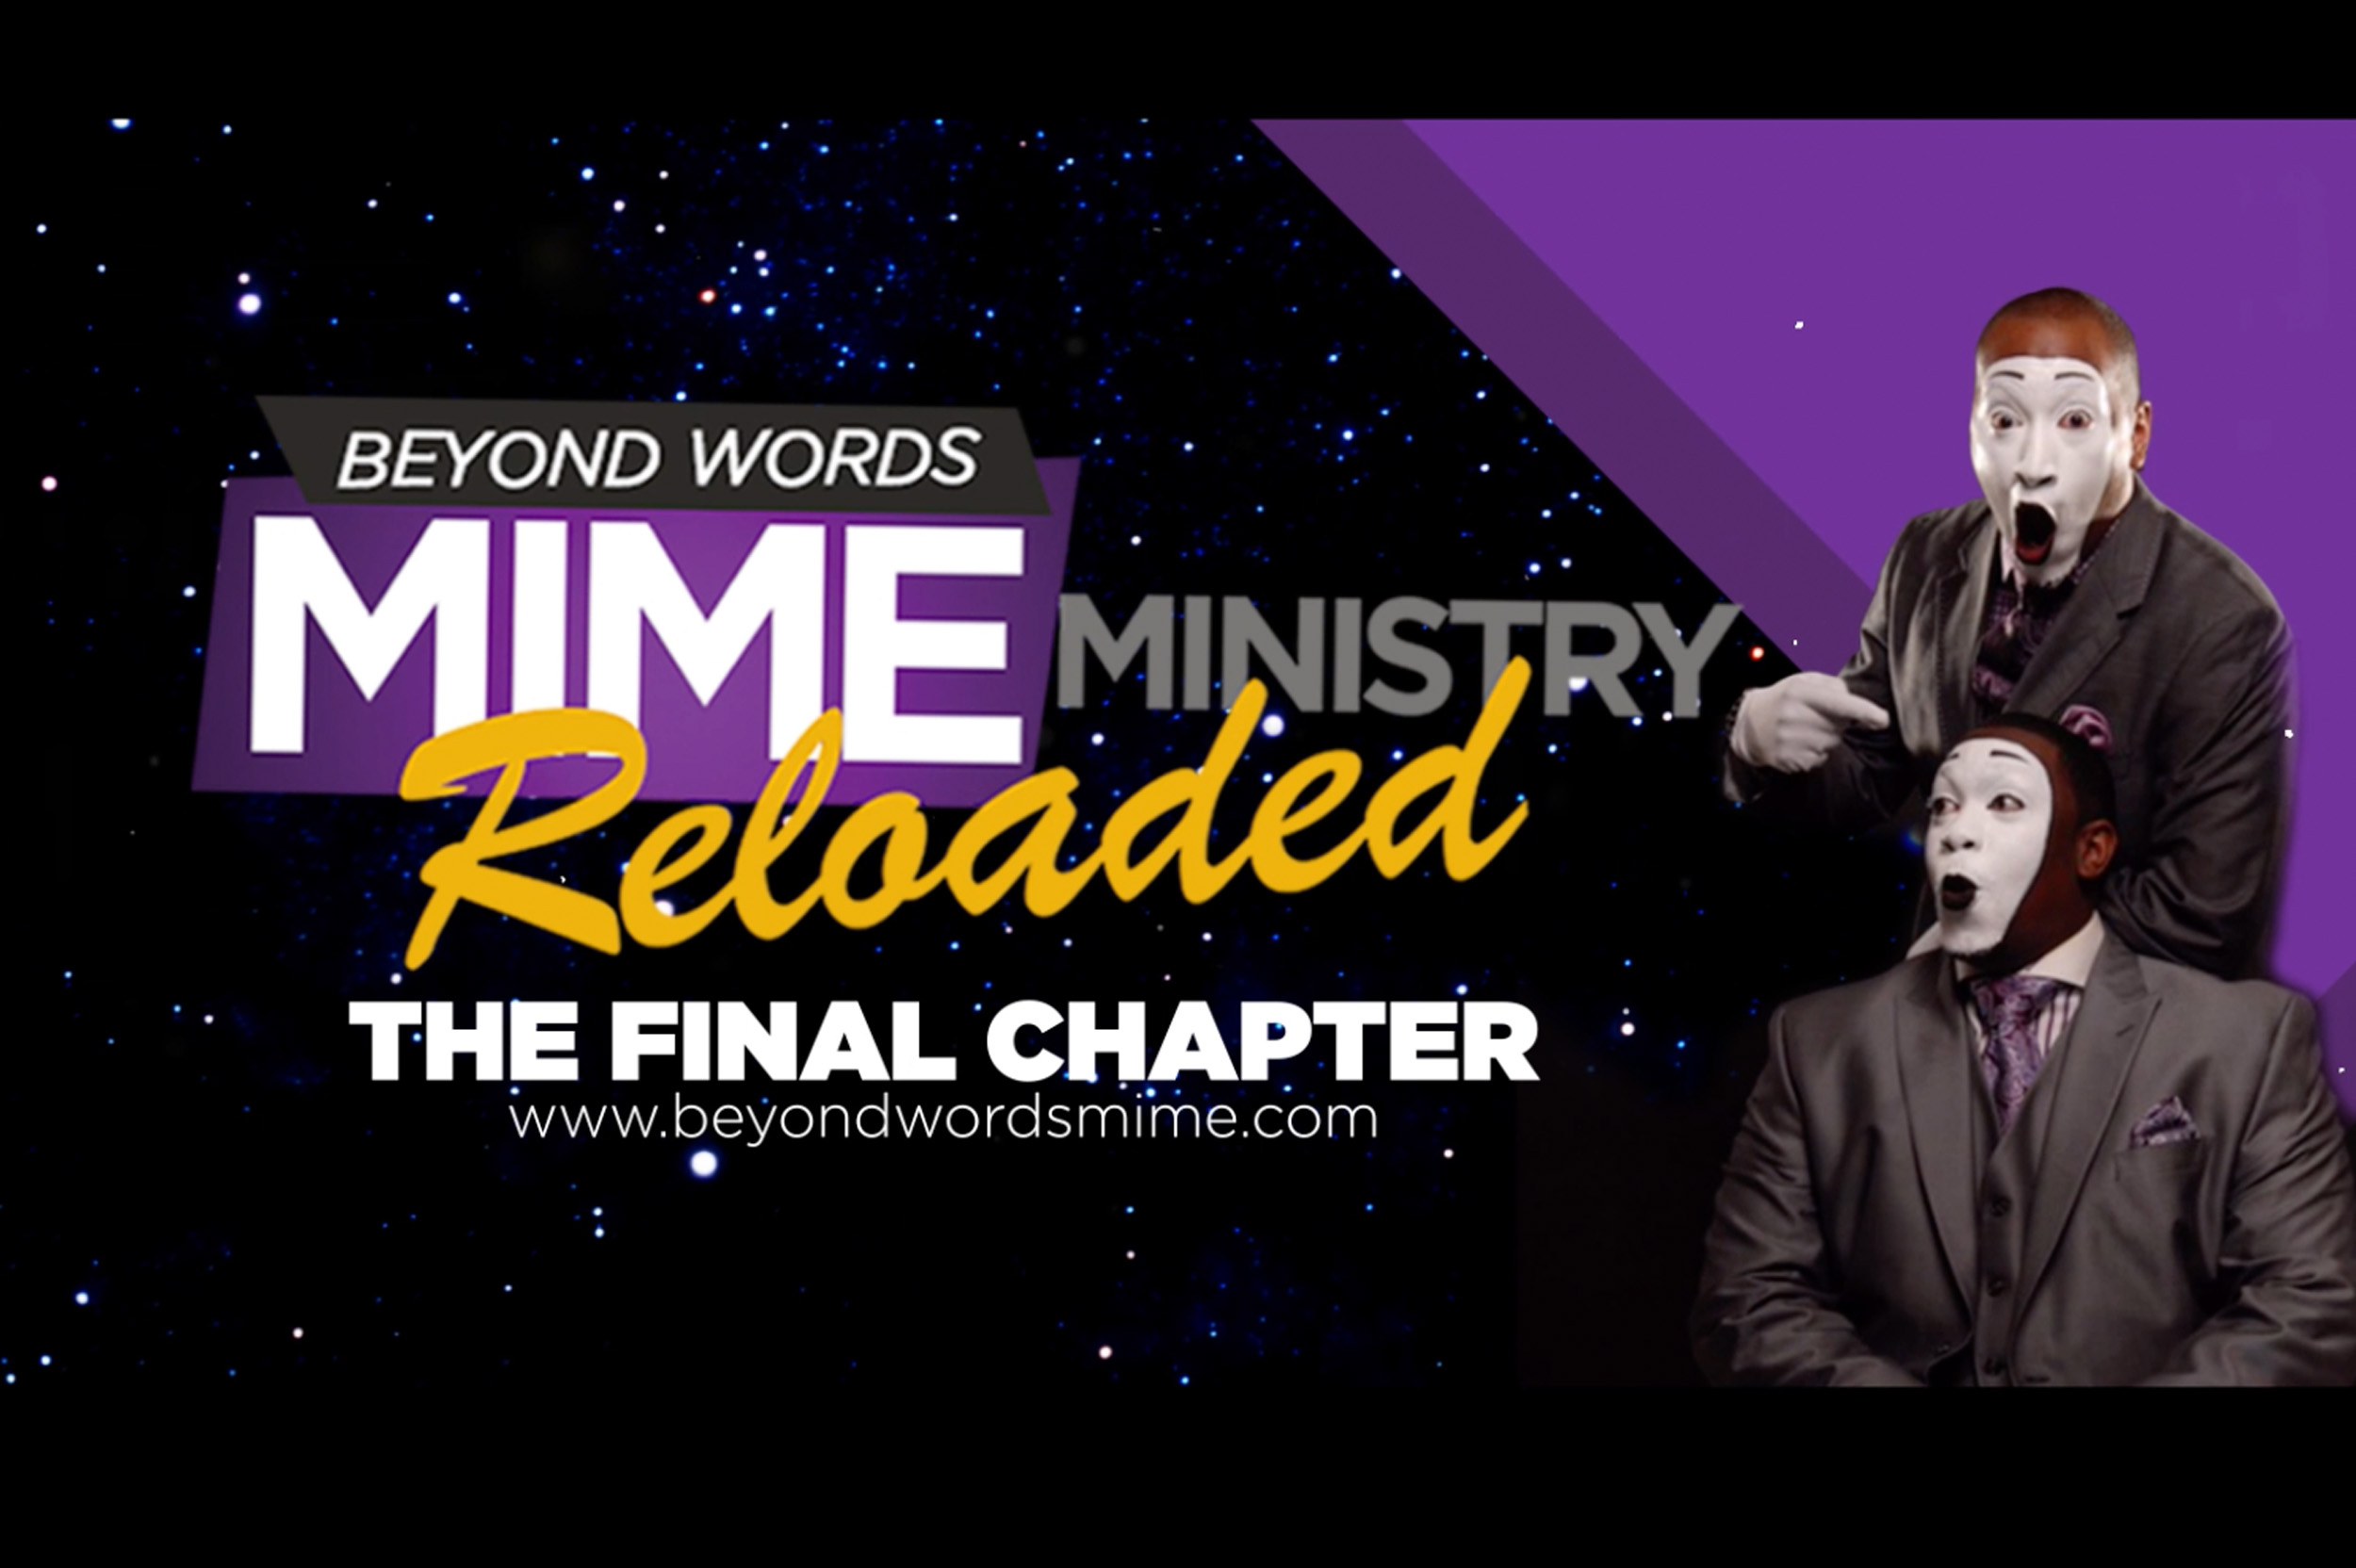 Mime Ministry - Motion Graphics // Video Consulting